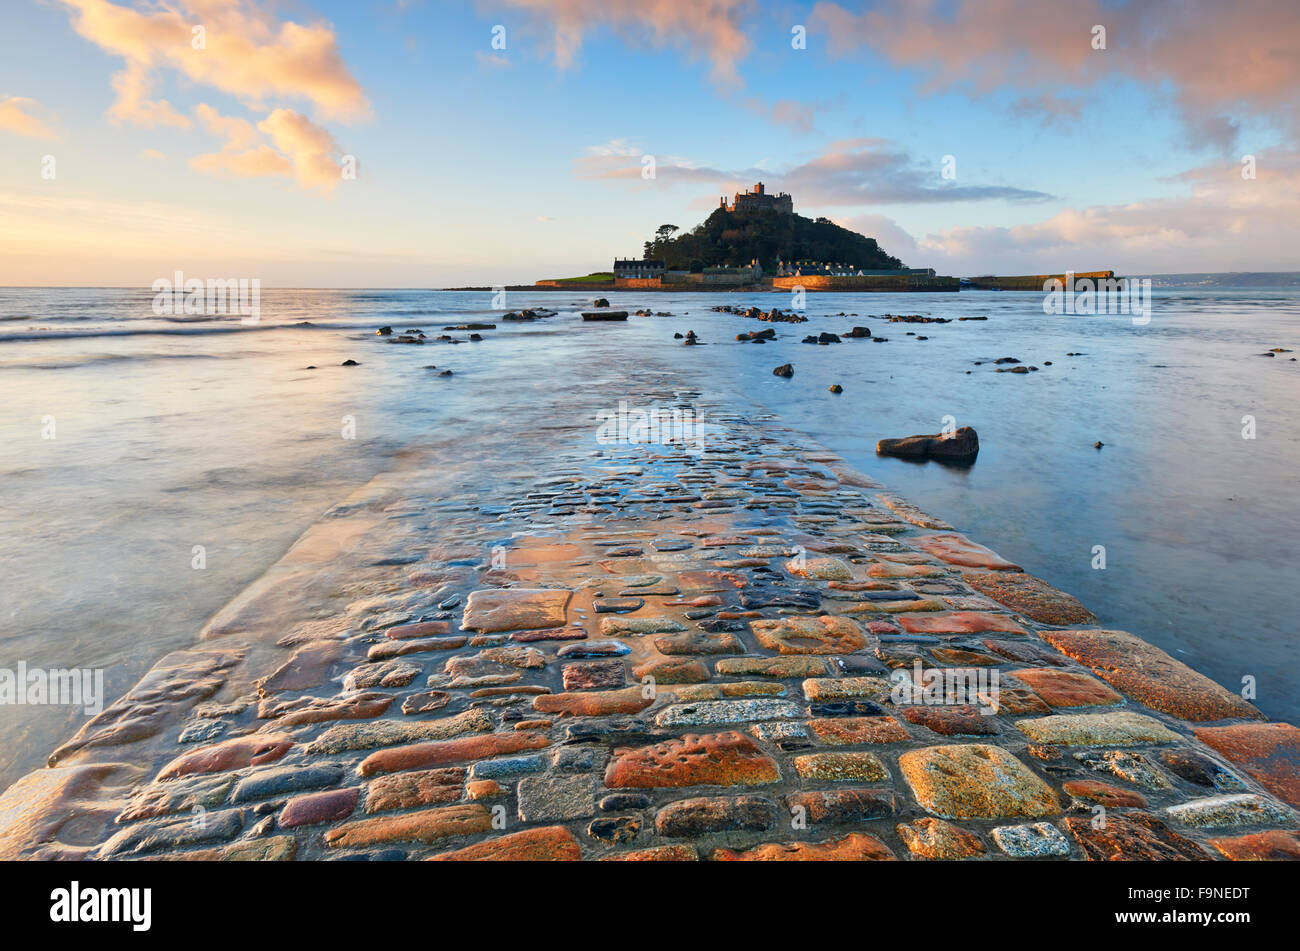 The receding tide reveals a view of the cobbled causeway that connects St Michael's Mount with the mainland - Stock Image